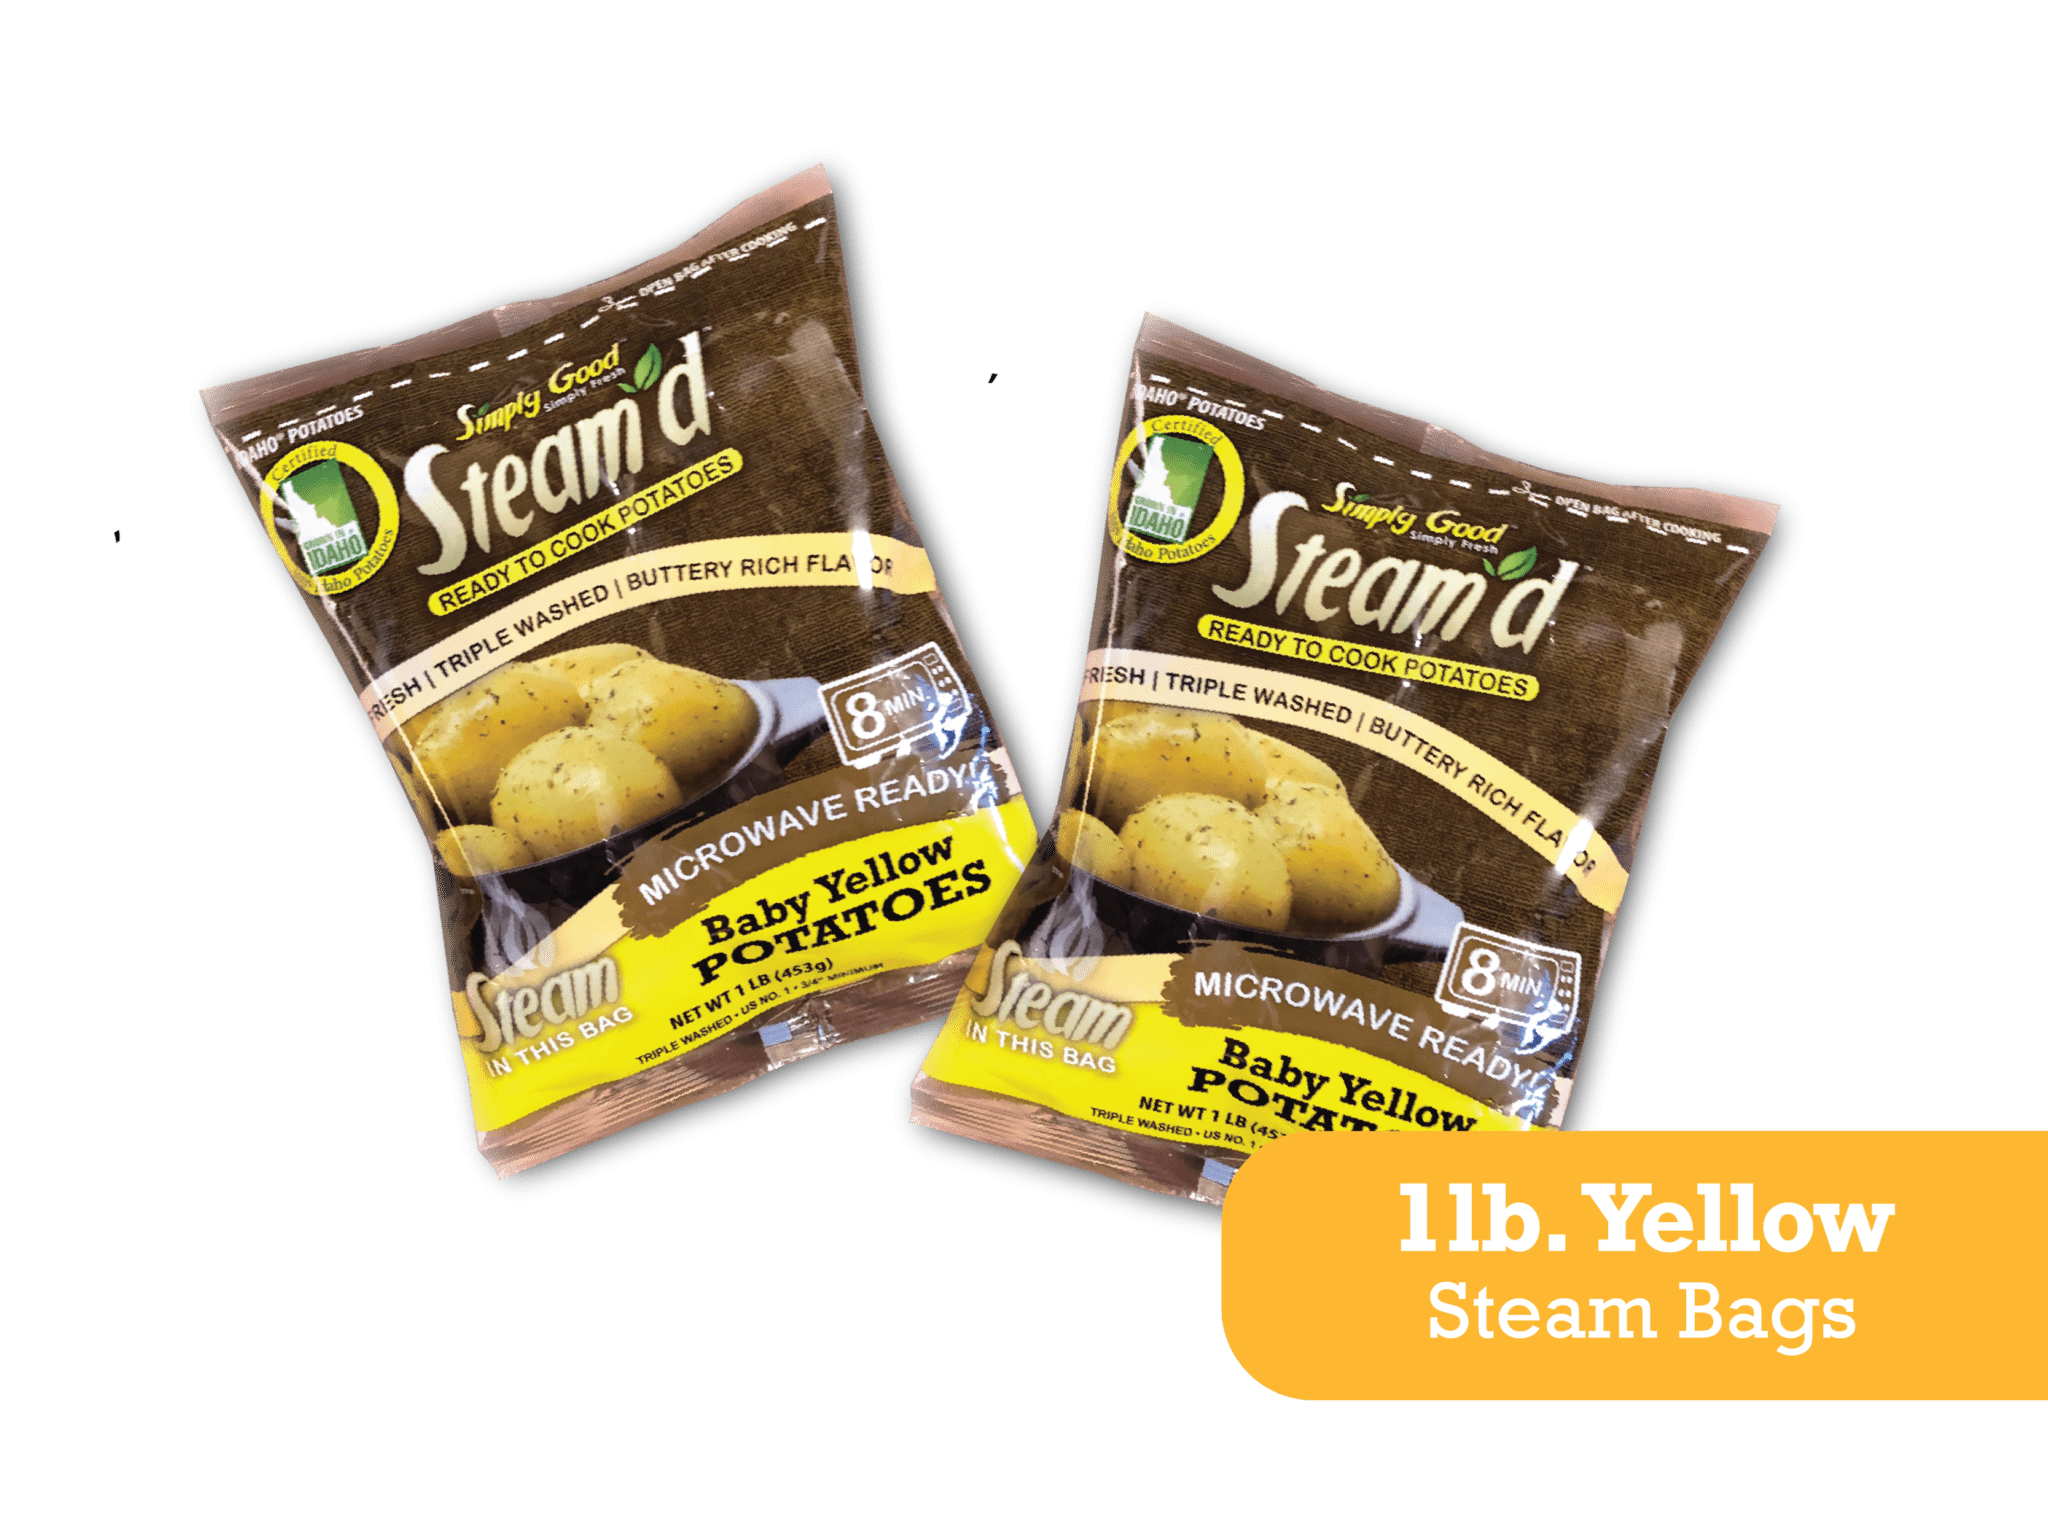 Eagle Eye Produce Steam'd Baby Yellow Potatoes 1 lb steam bags